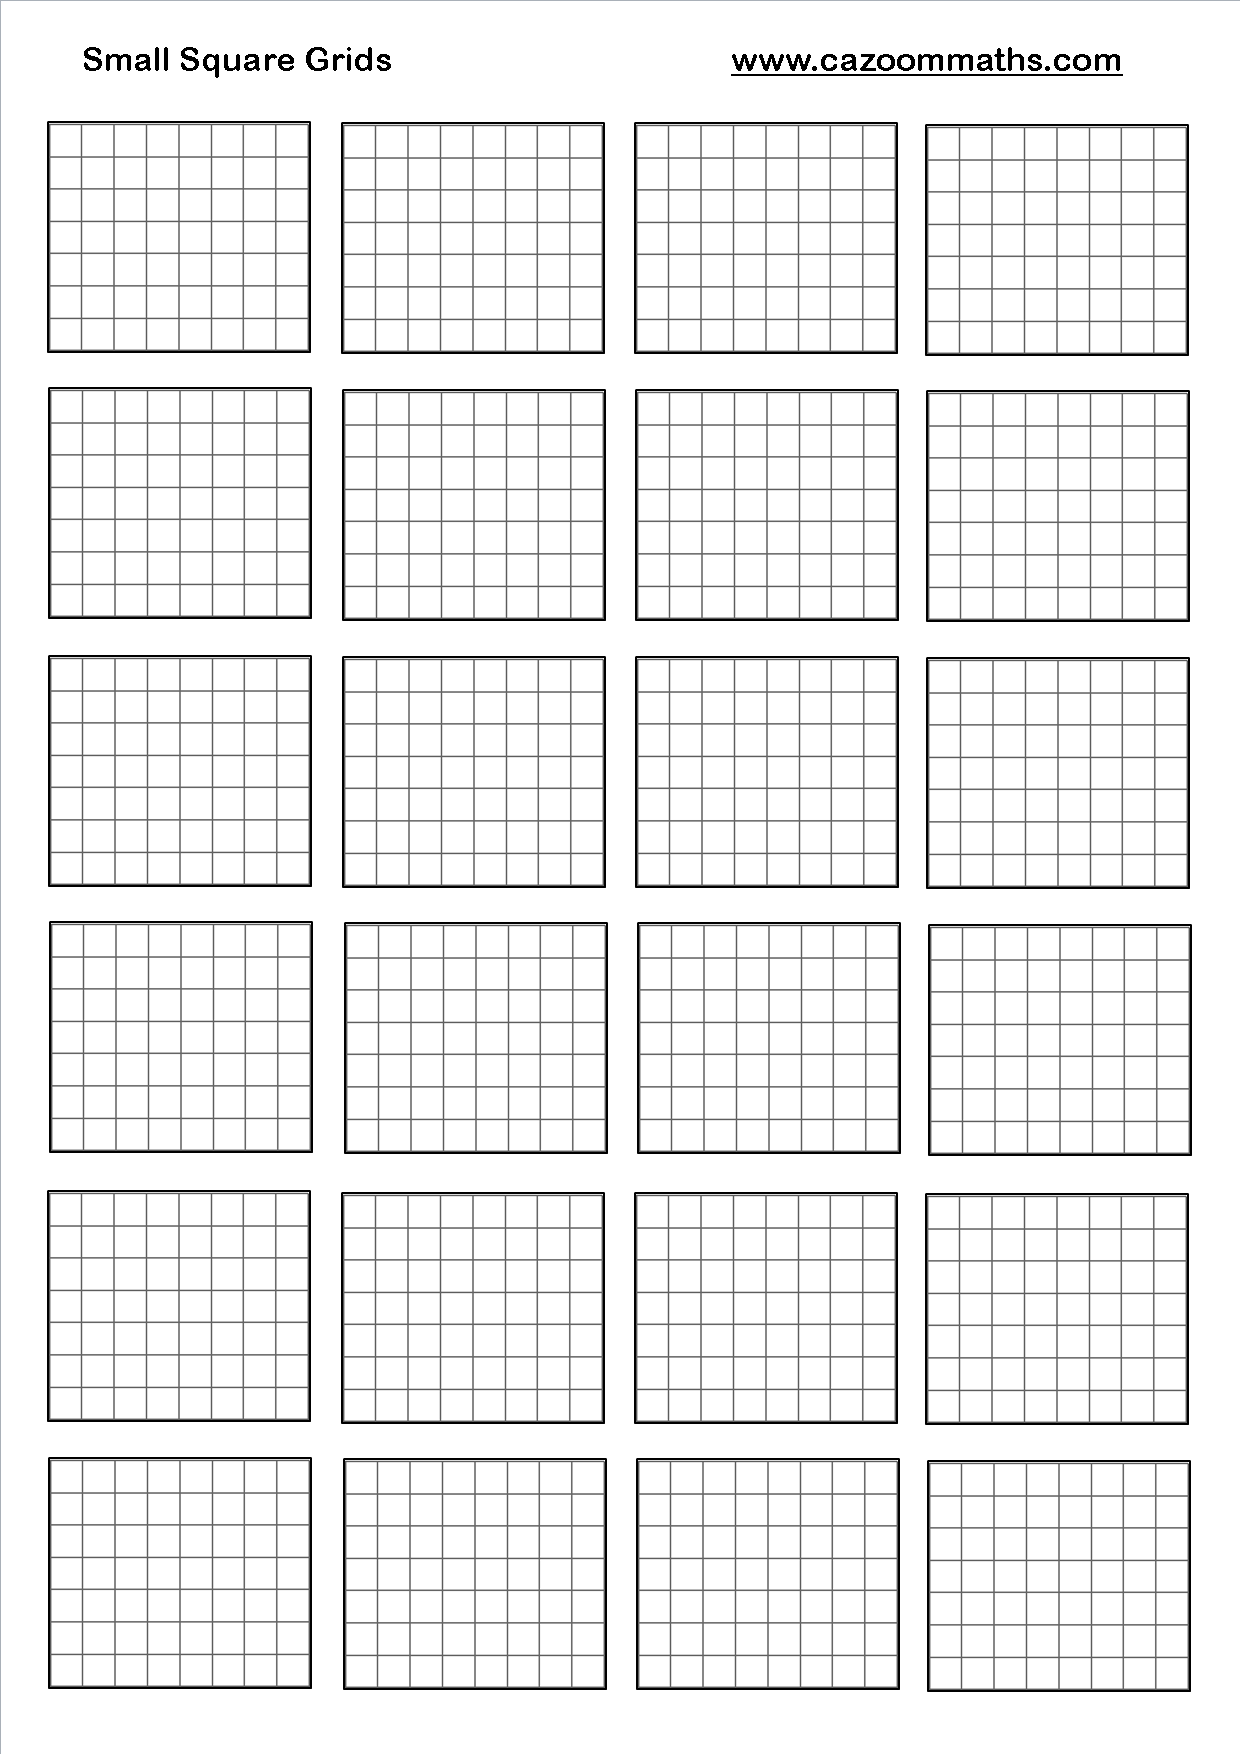 Small Square Grids